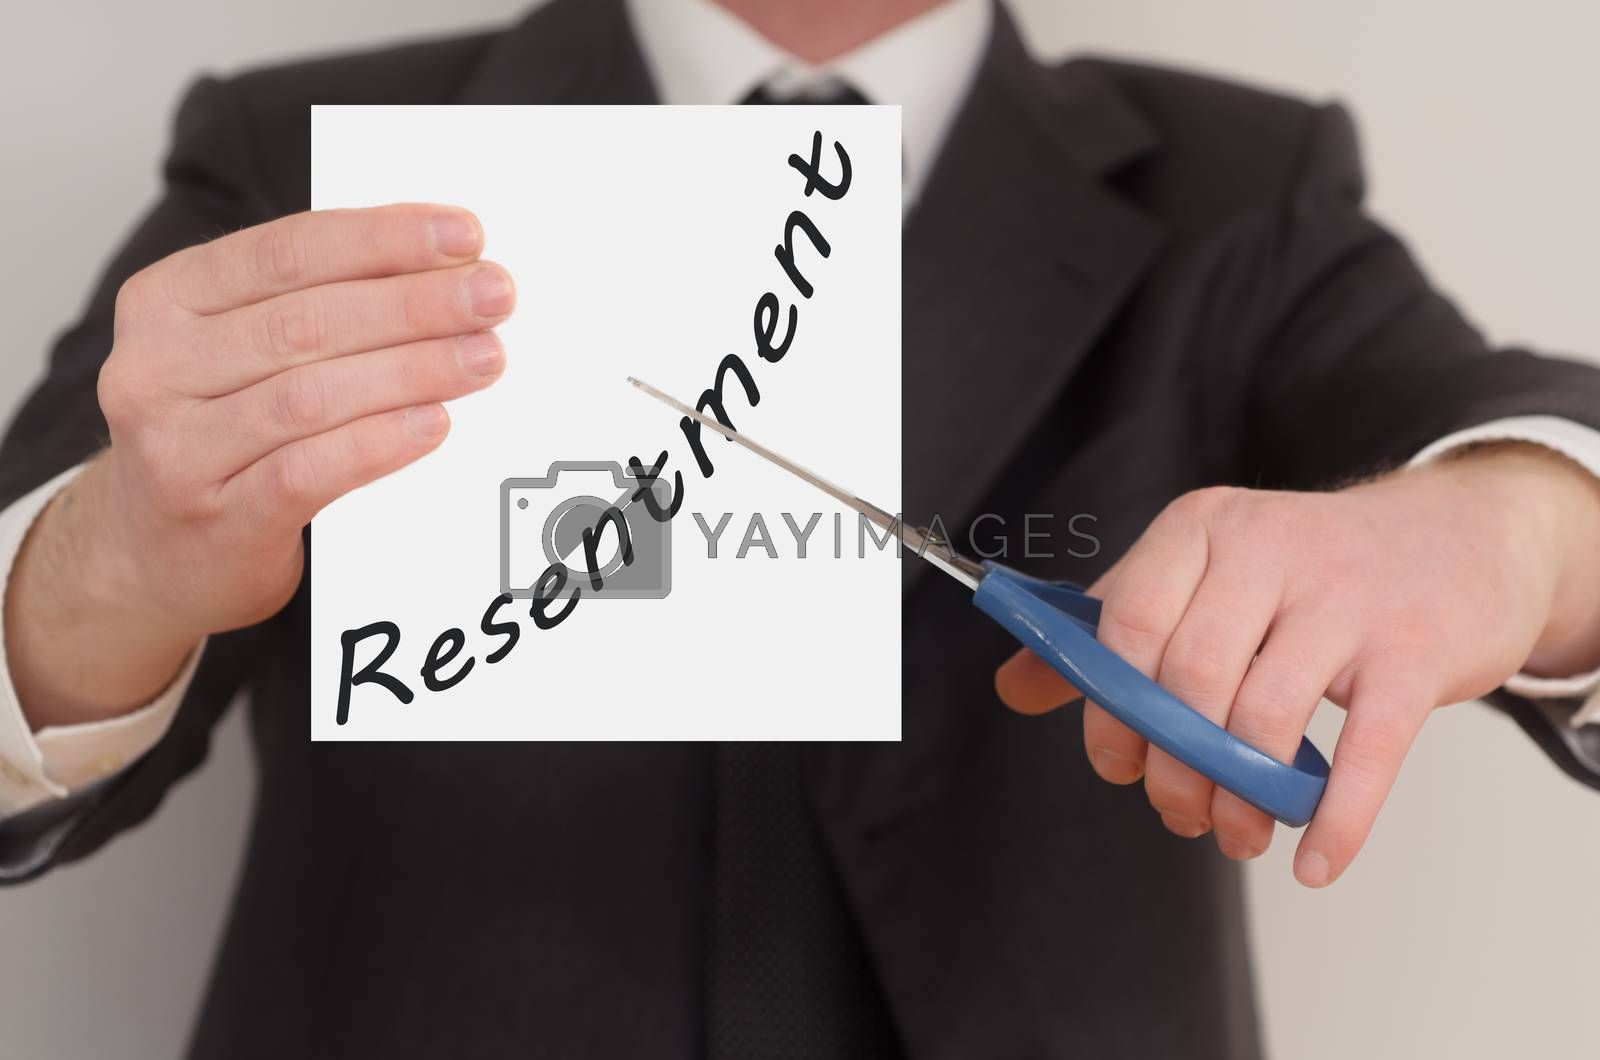 Resentment, man in suit cutting text on paper with scissors